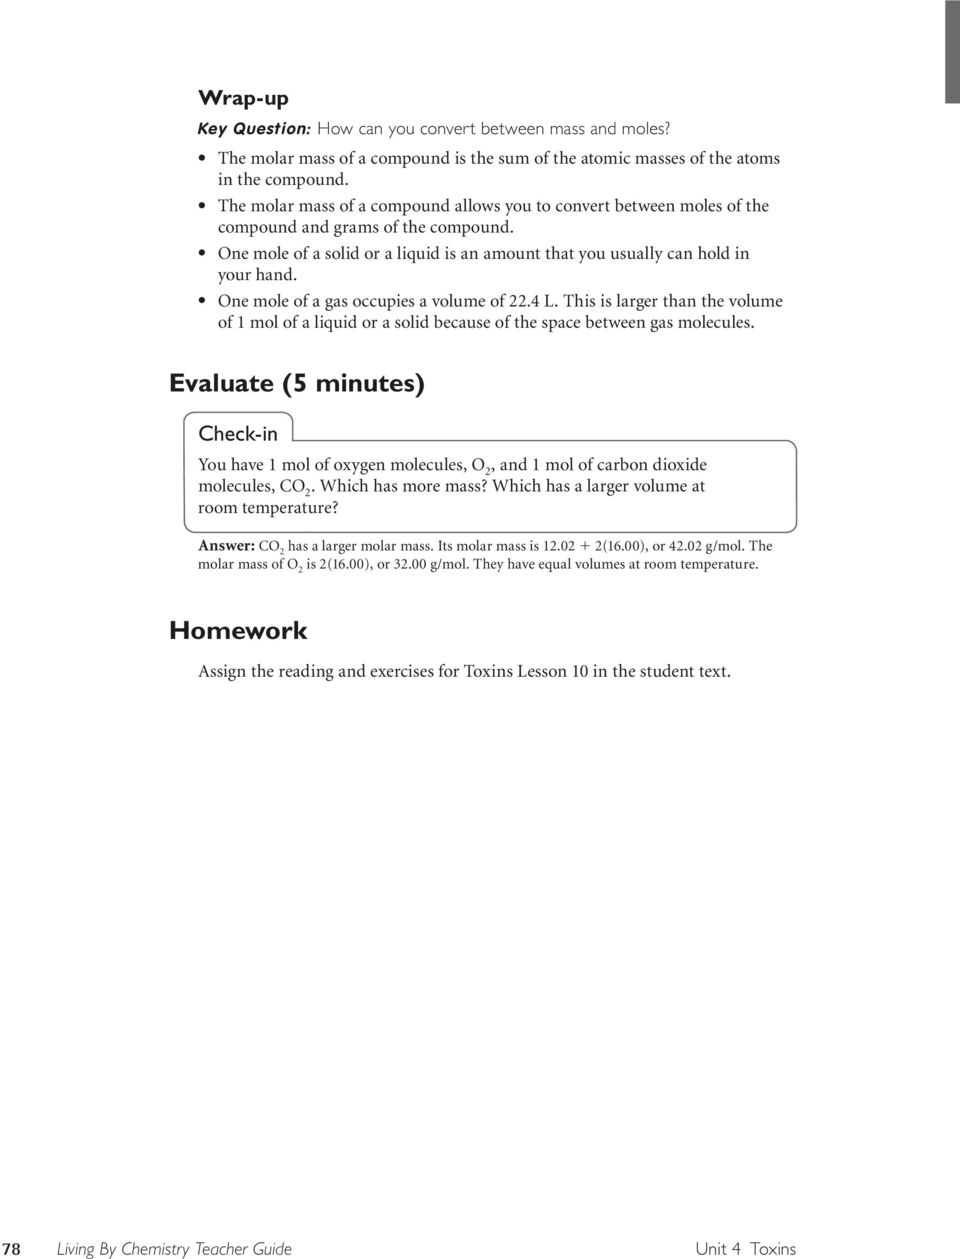 worksheet Molar Volume Worksheet Answers what s in a mole molar mass pdf one of gas occupies volume 22 4 l this is larger than